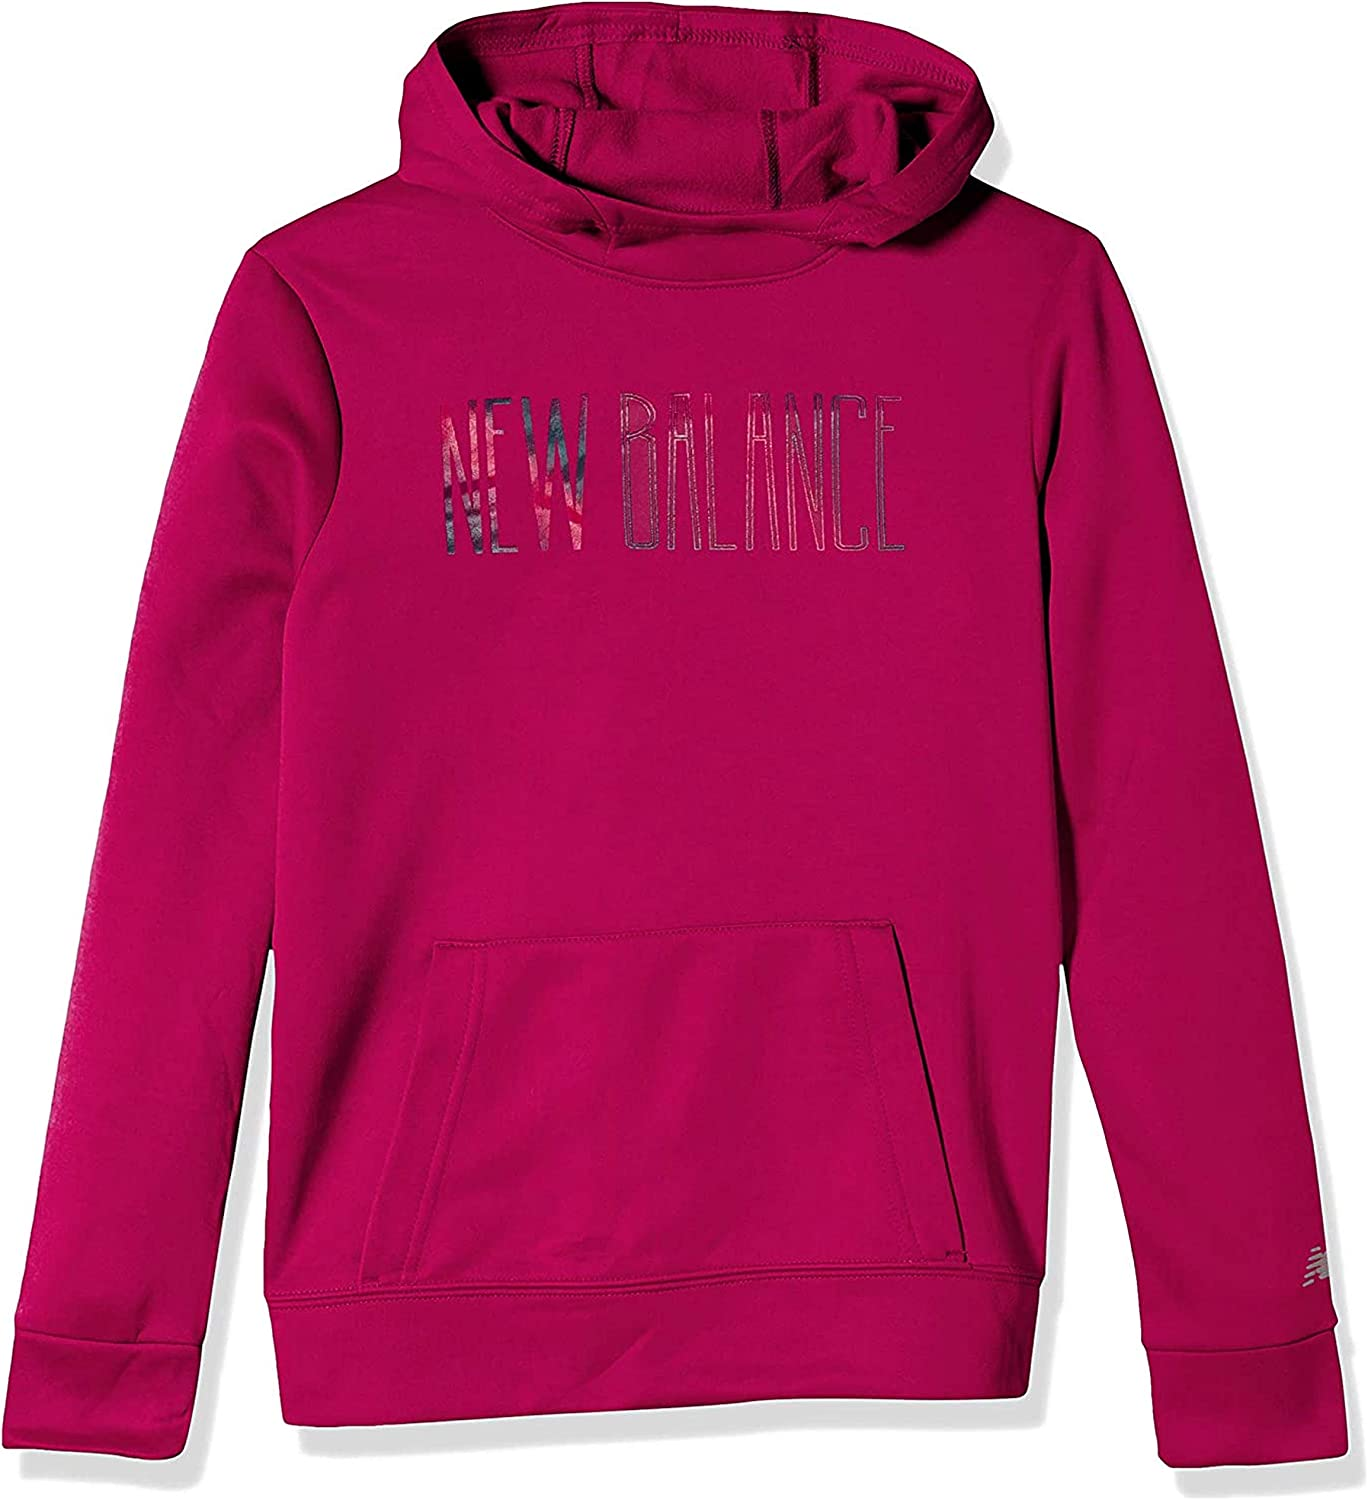 Active Performance Hoodie Pullover Sweatshirt with Graphic